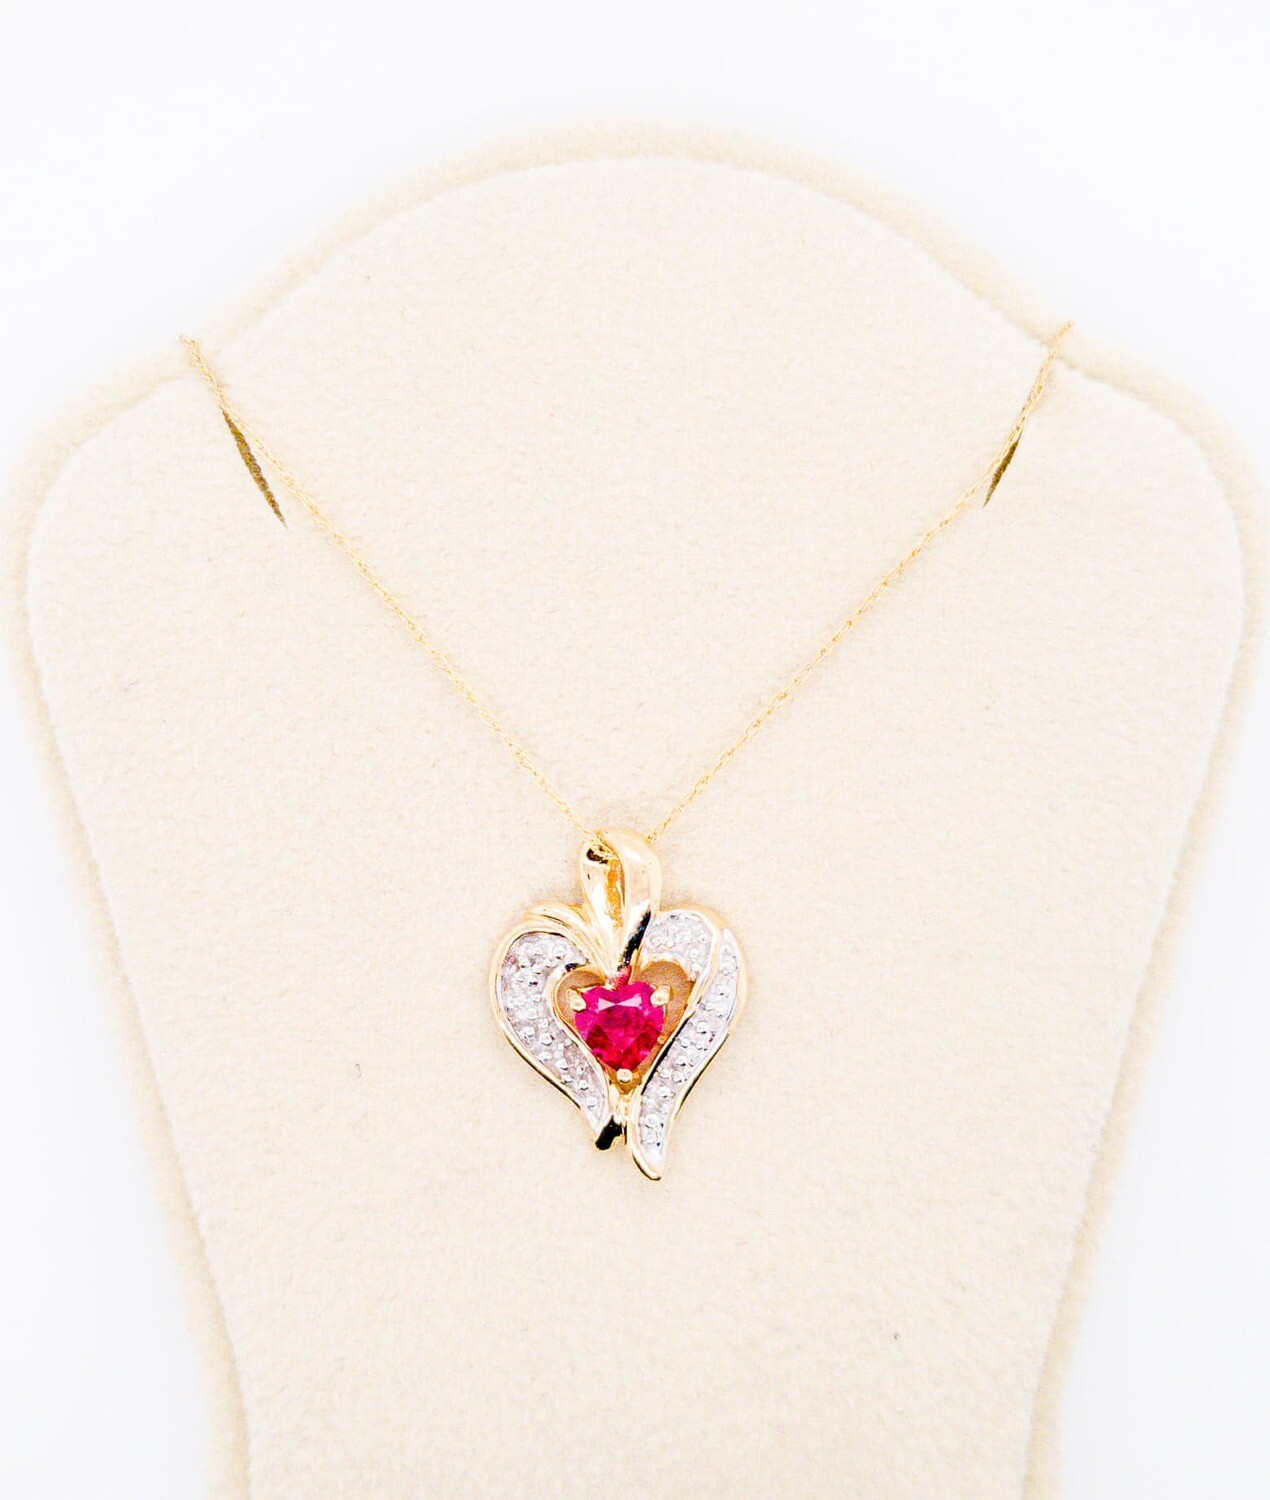 800-100-201203 Ruby and Diamond Heart Necklace with fine chain